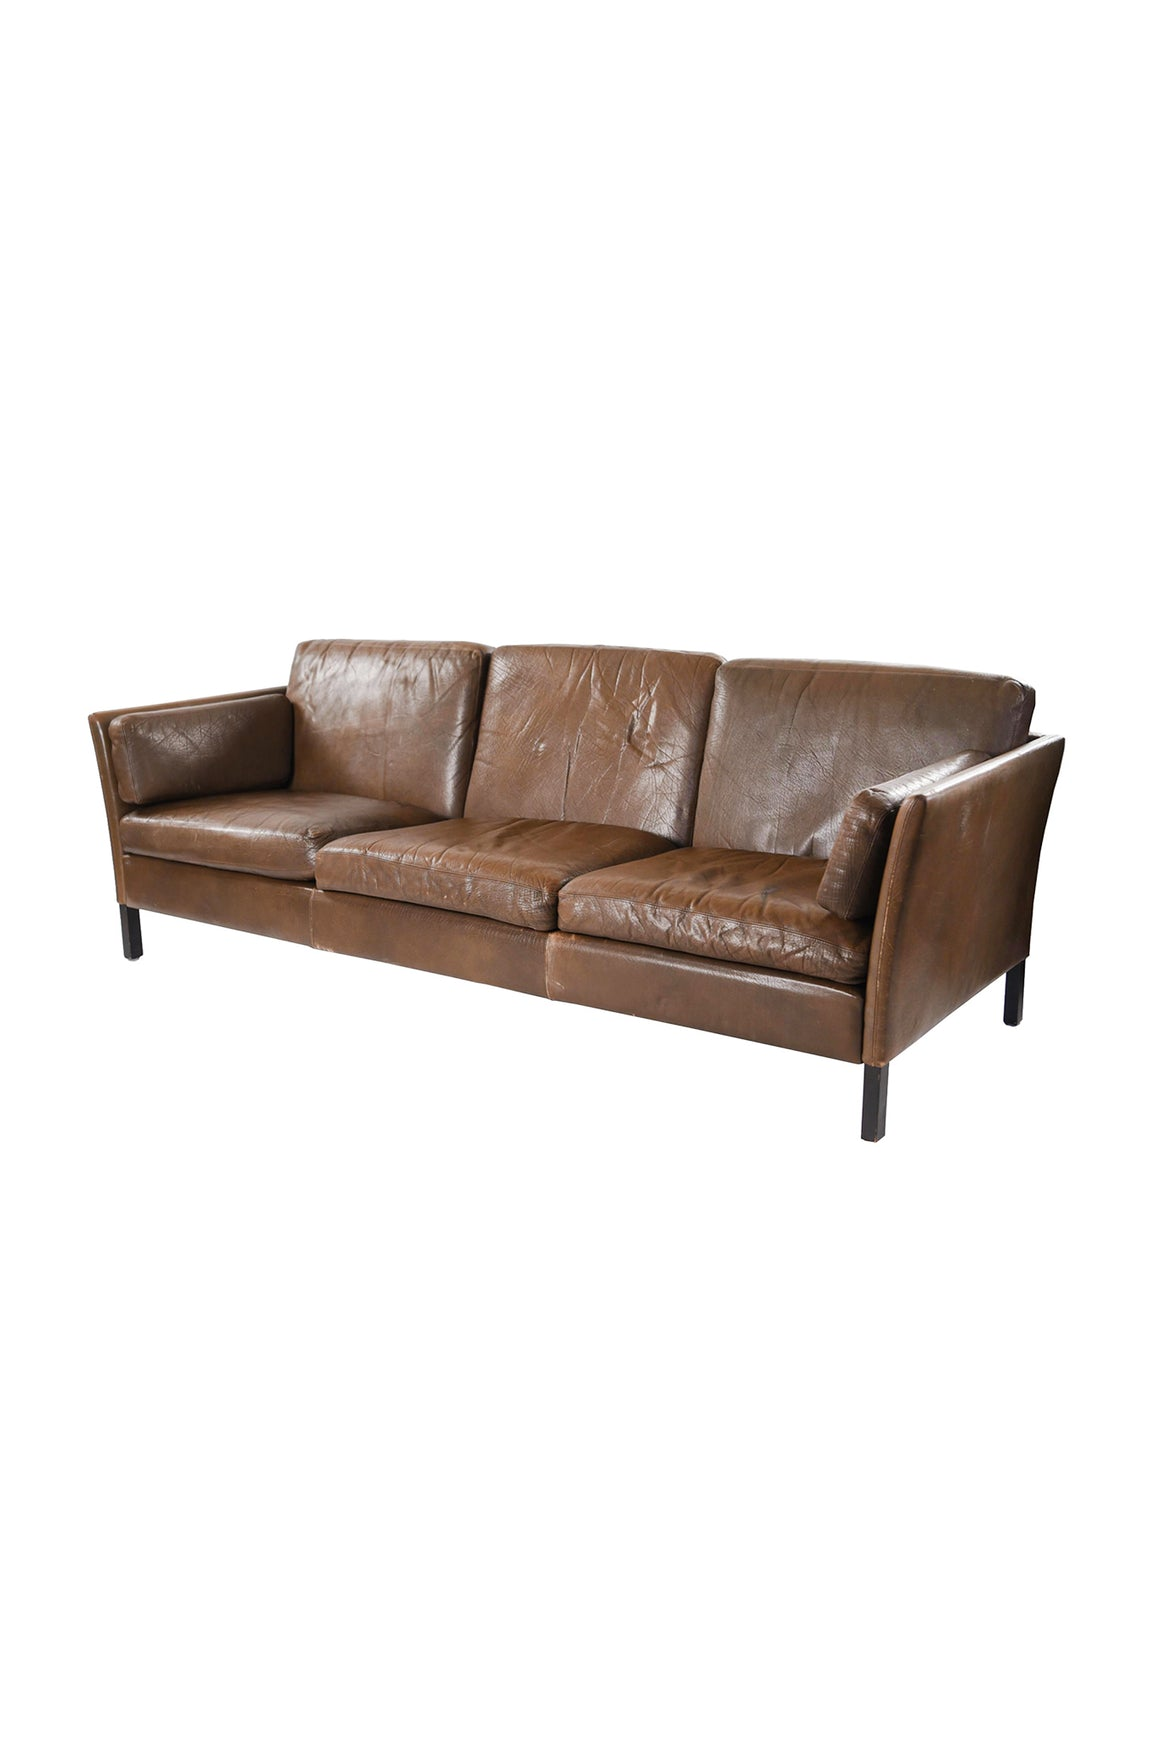 1960s Danish Modern Brown Leather Sofa by Mogens Hansen